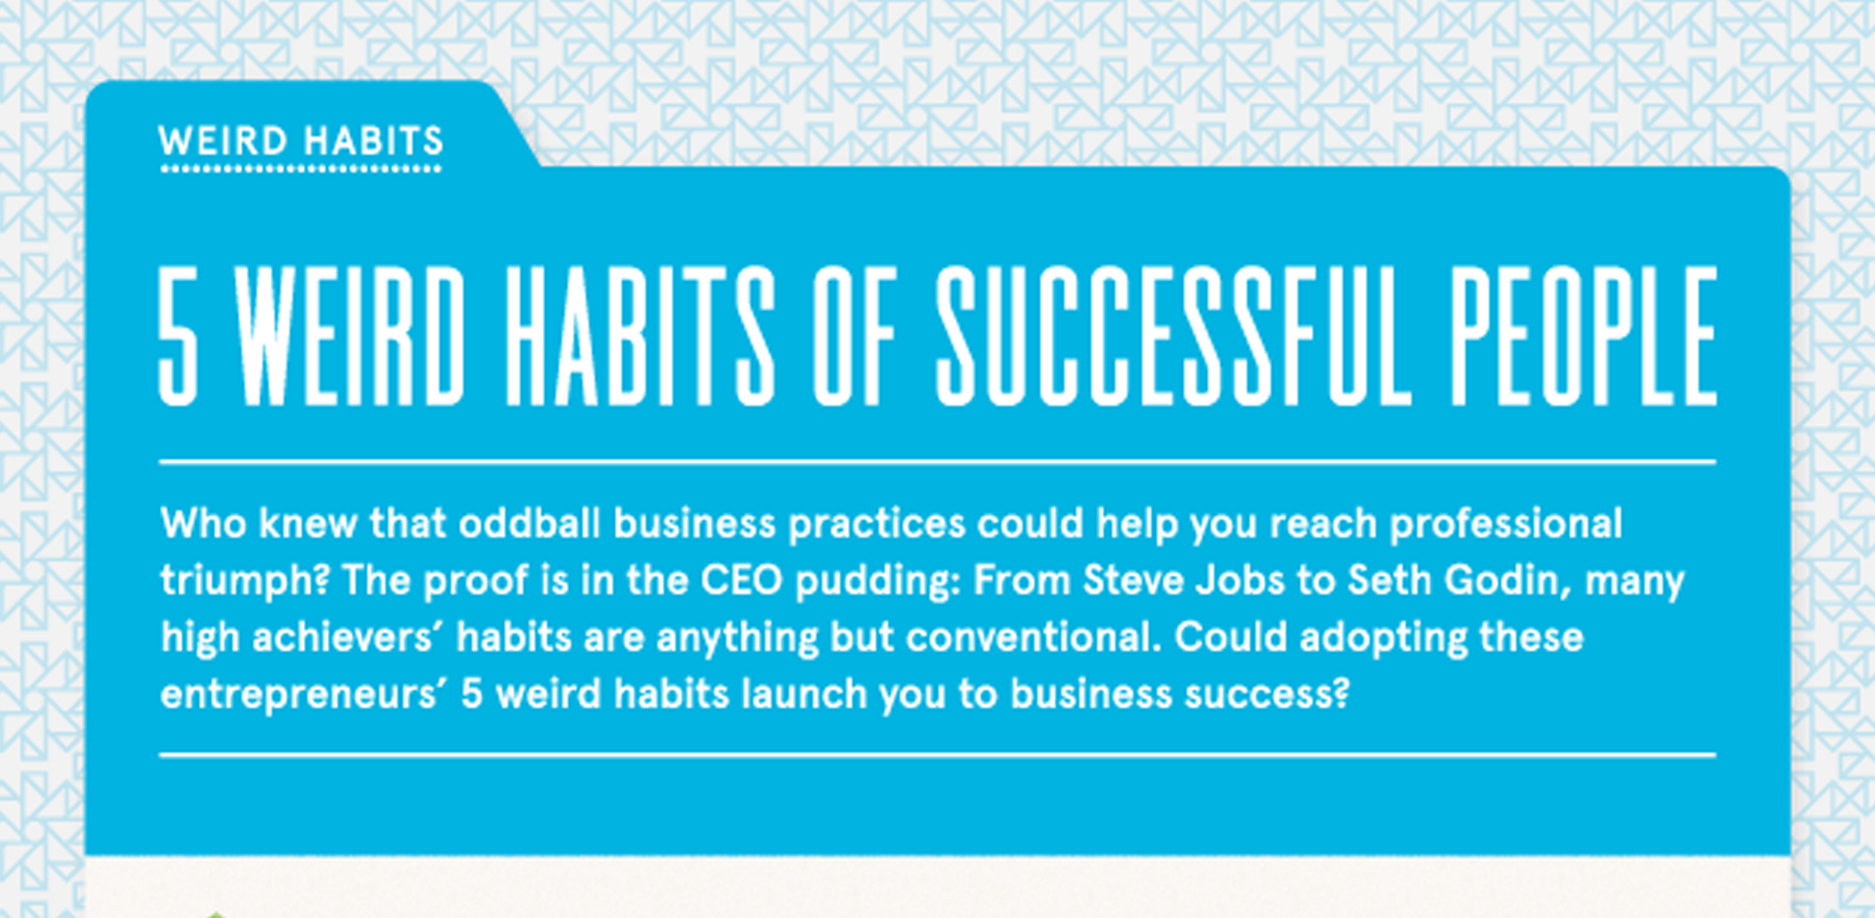 5 Weird Habits of Highly Successful People